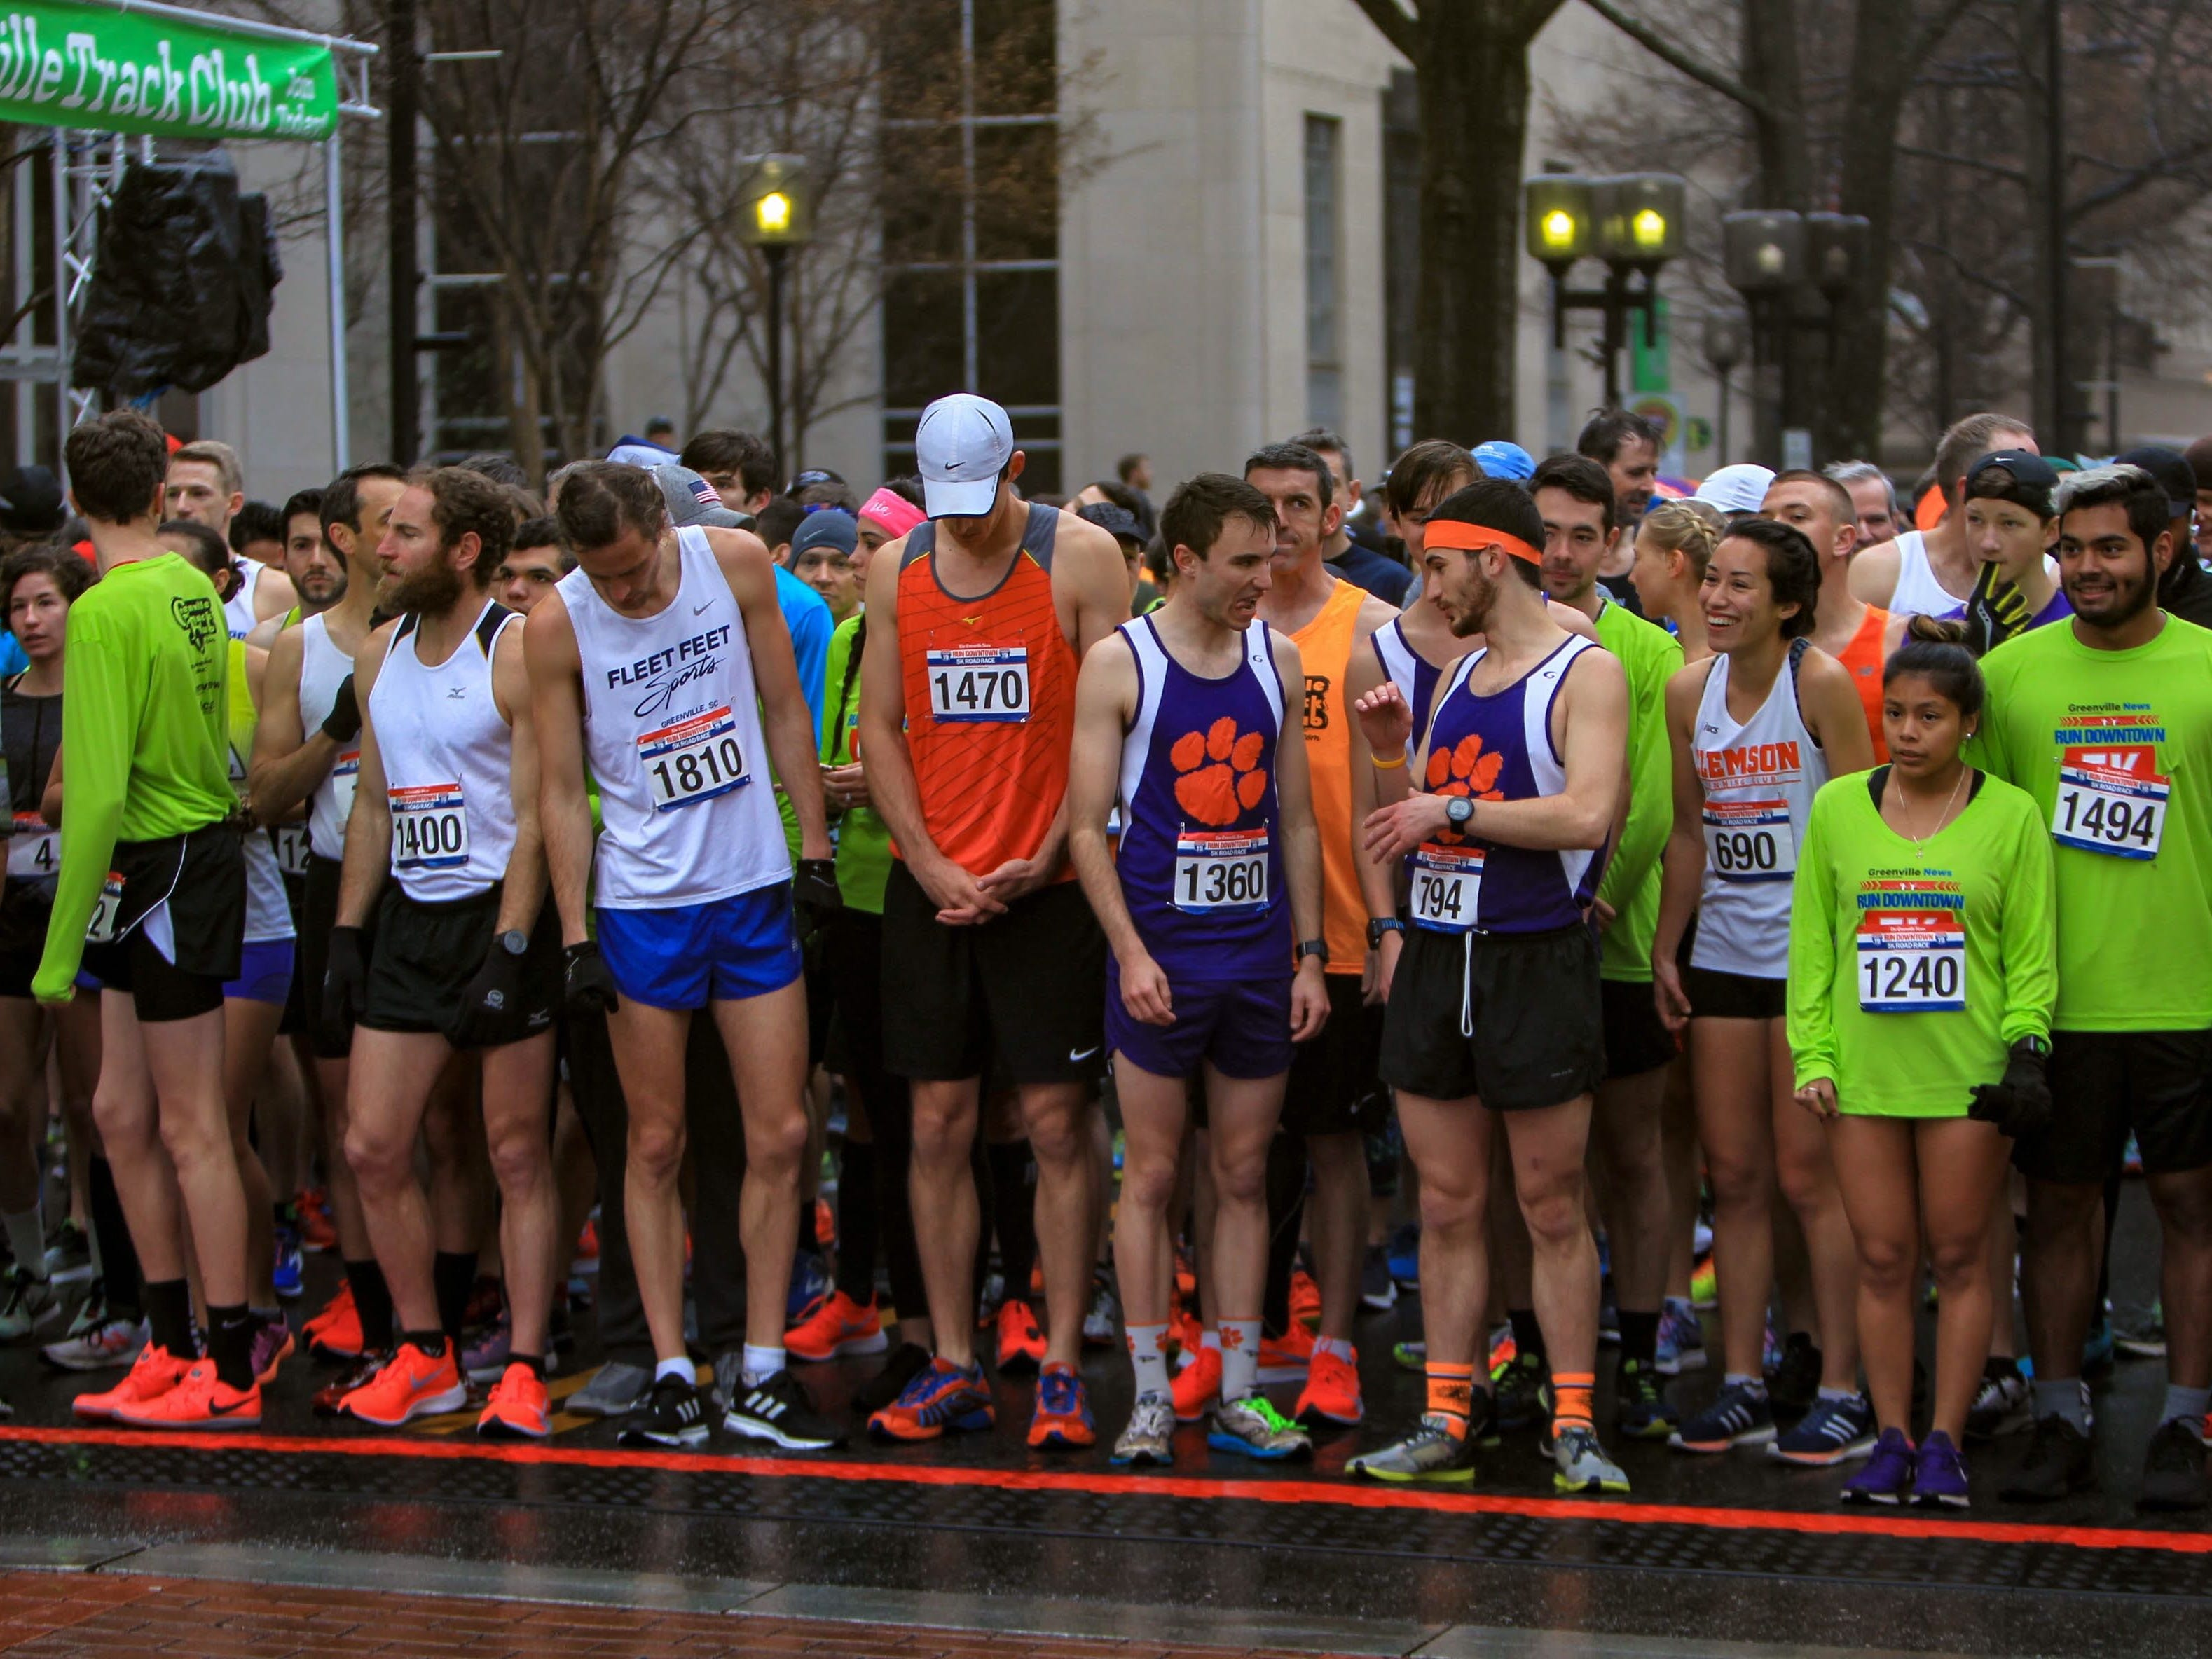 Runners line up at the start of The Greenville News Run Downtown 5k.